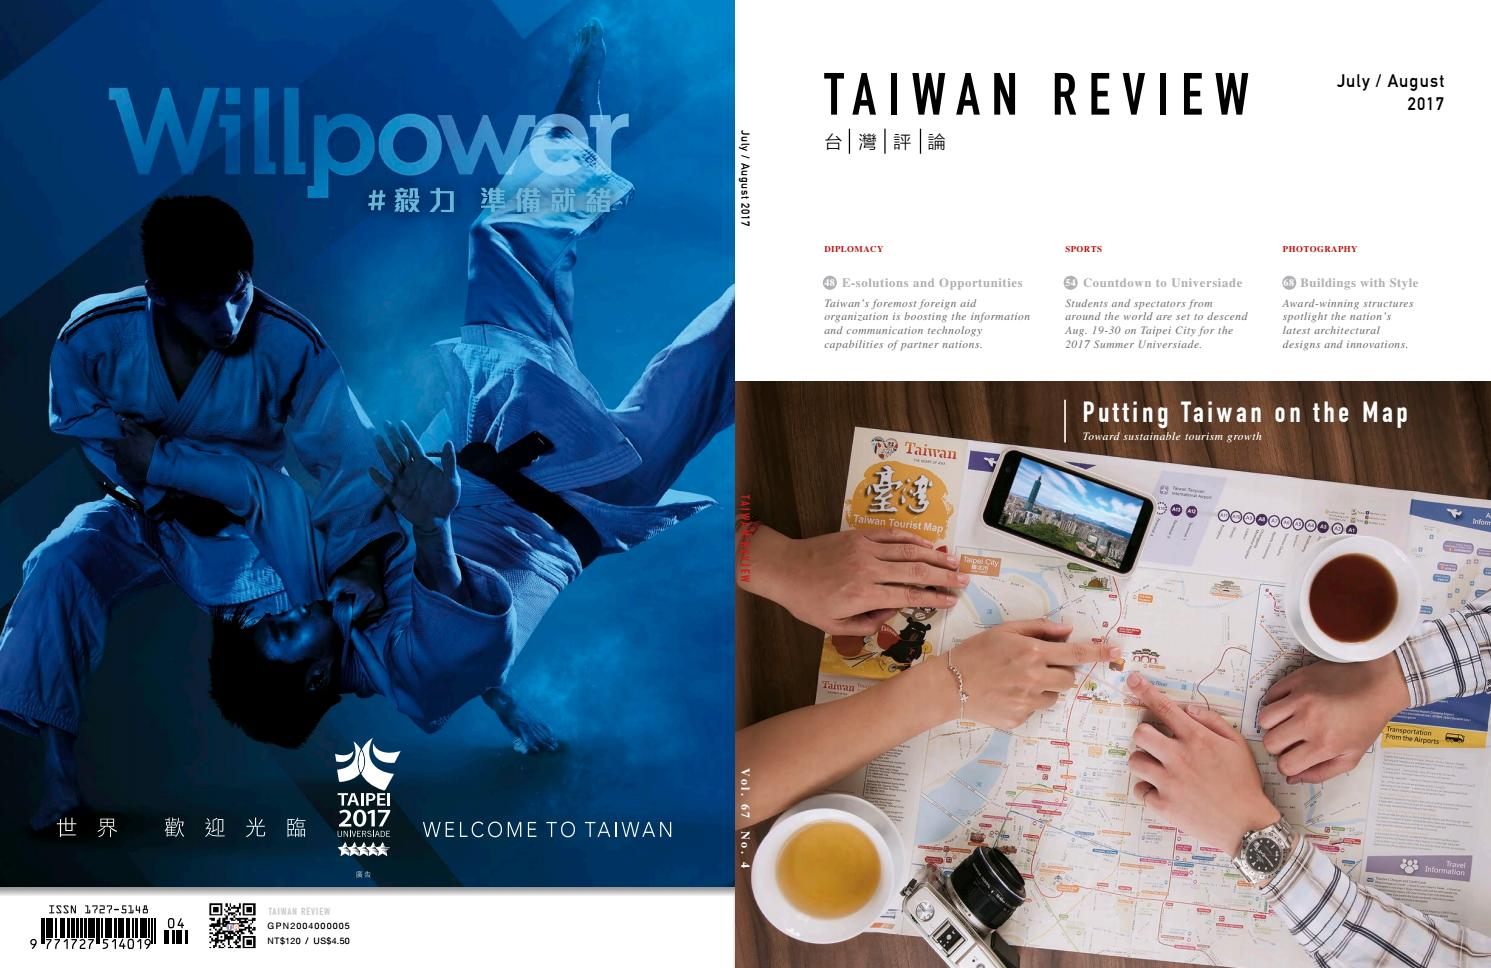 Tr20170708 by Taiwan Review - issuu